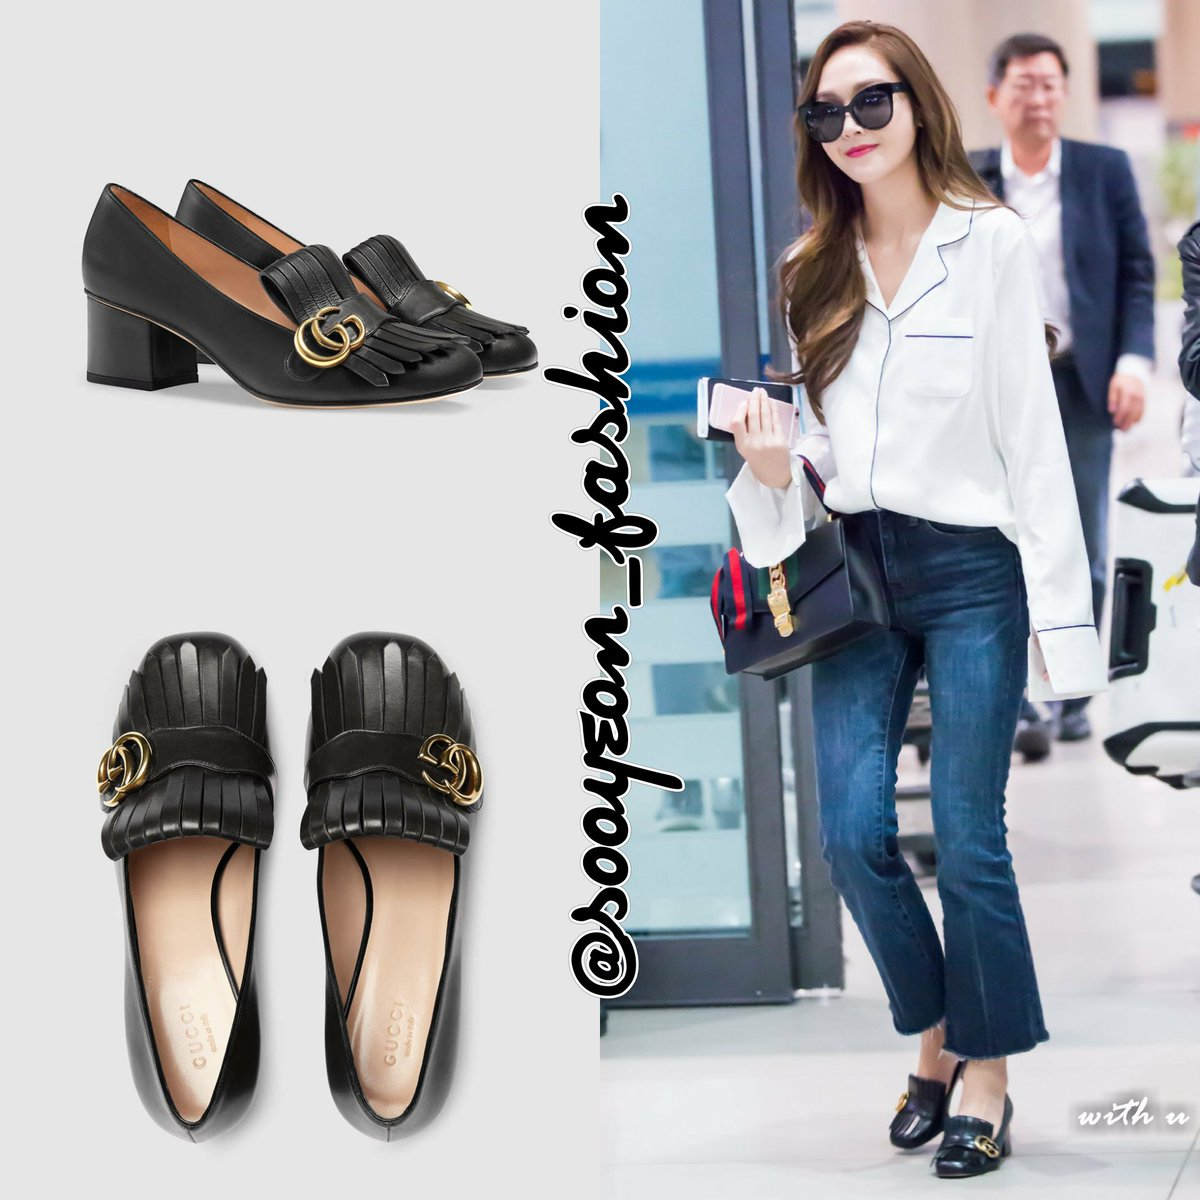 Jsy Fashion On Twitter 160417 Incheon Airport Gucci Leather Mid Heel Pump Black 750 Https T Co Vorobraie4 Jessicajung Sicasairportfashion Https T Co Lxmanyjqnf